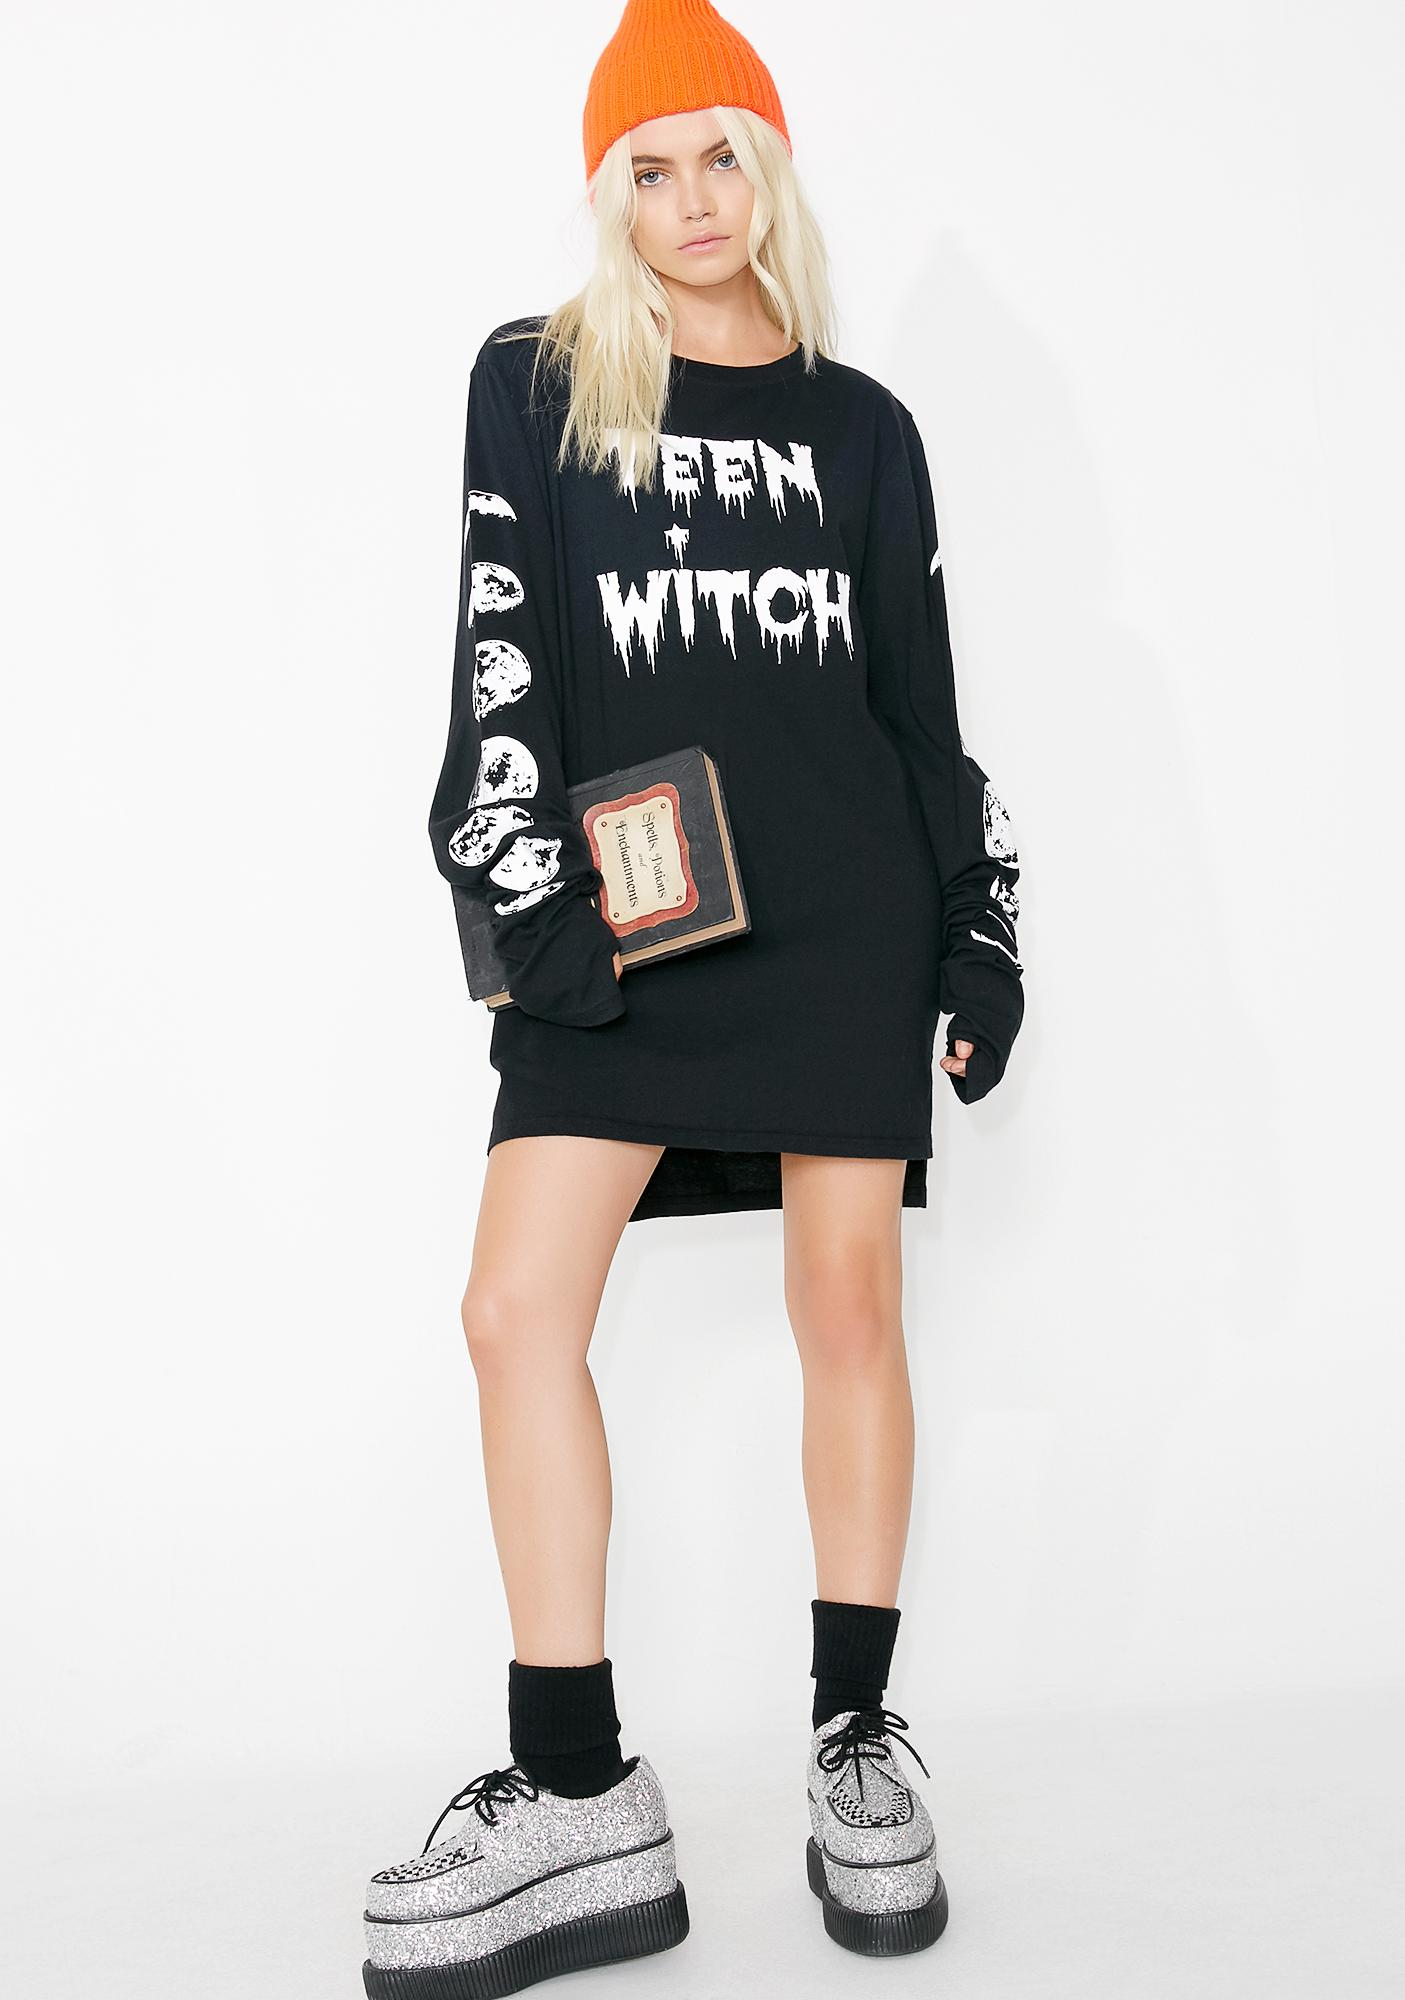 Image pretty potion witch teen theme